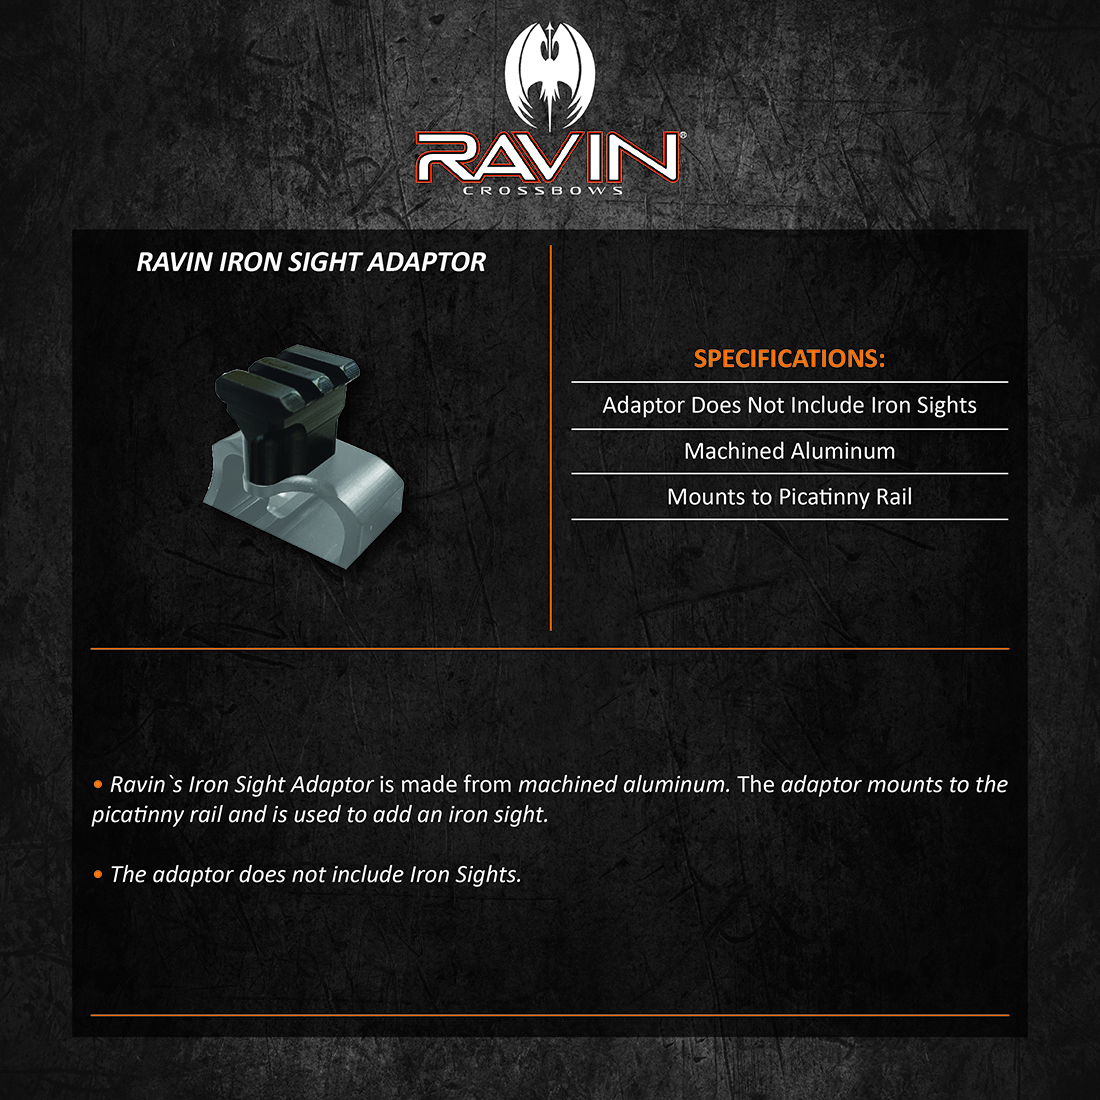 Ravin_Iron_Sight_Adaptor_Product_Description